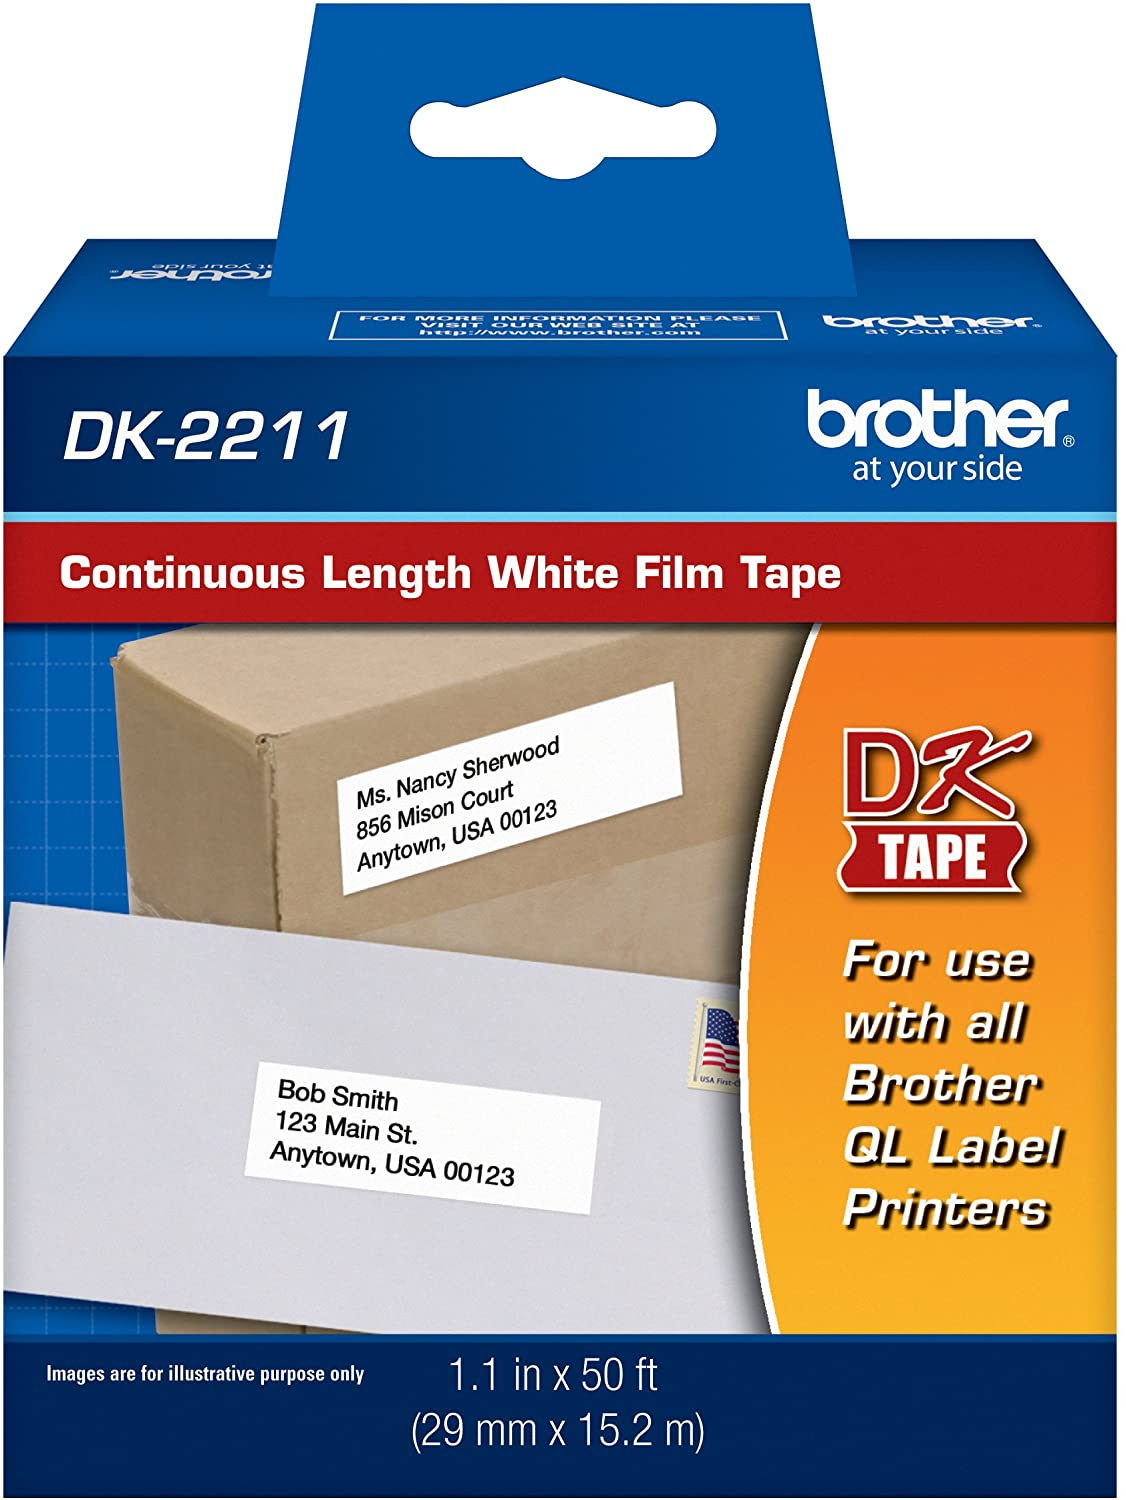 "Brother Genuine DK-2211 Continuous Length Black on White Film Tape for Brother QL Label Printers, 1.1"" x 50' (29mm x 15.2M), 1 Roll per Box, DK2211 : Labeling Tape : Office Products"